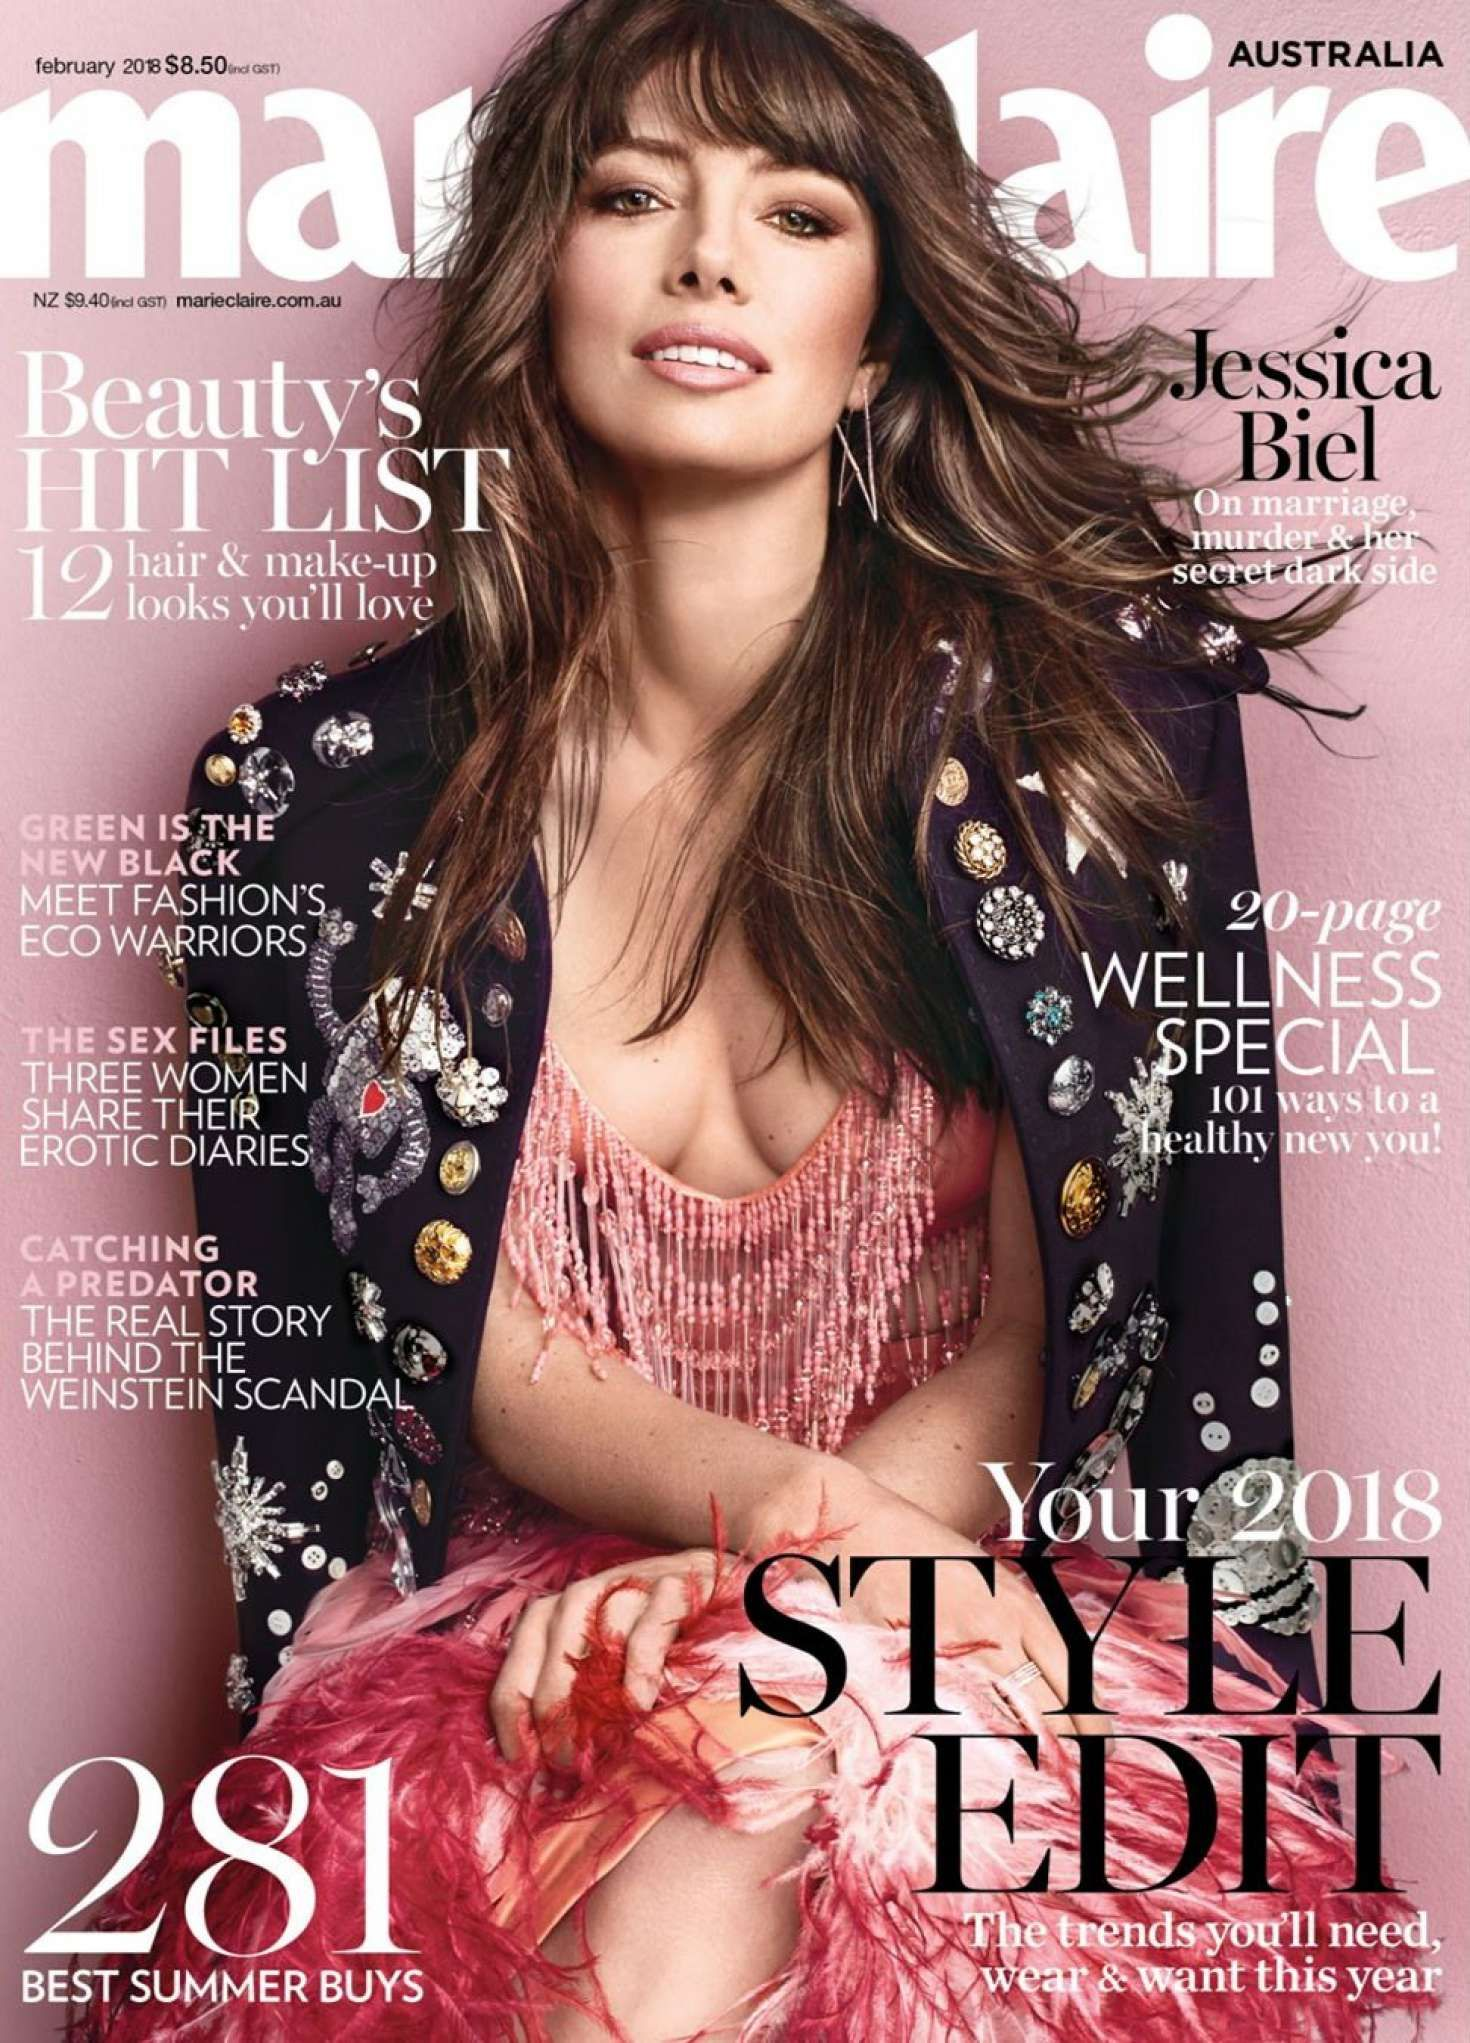 pics Hi Blake Meet Marie Claire's beautiful August issue cover star